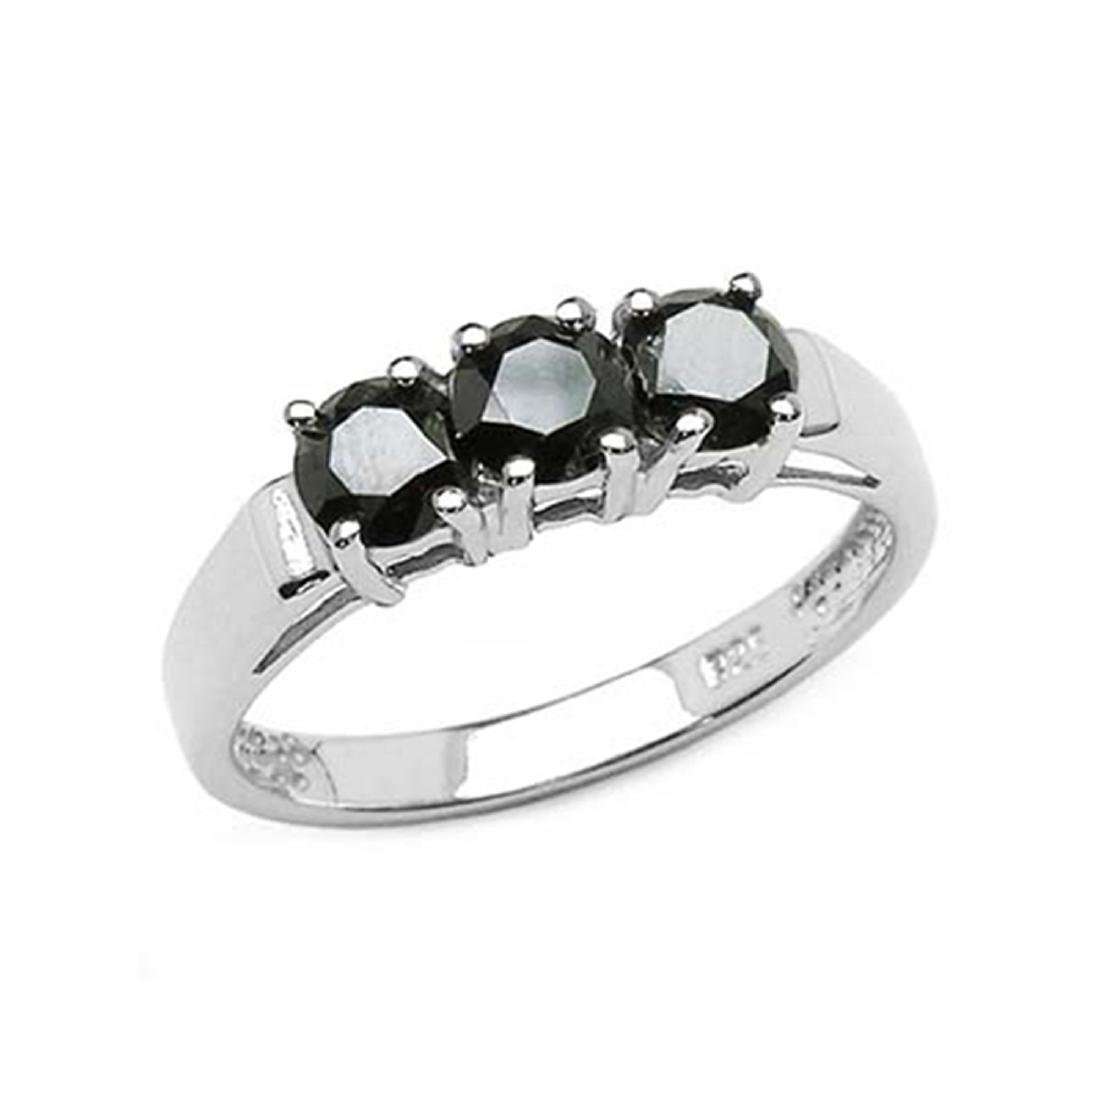 *Fine Jewelry 1.19CT Round Cut Black Diamond And